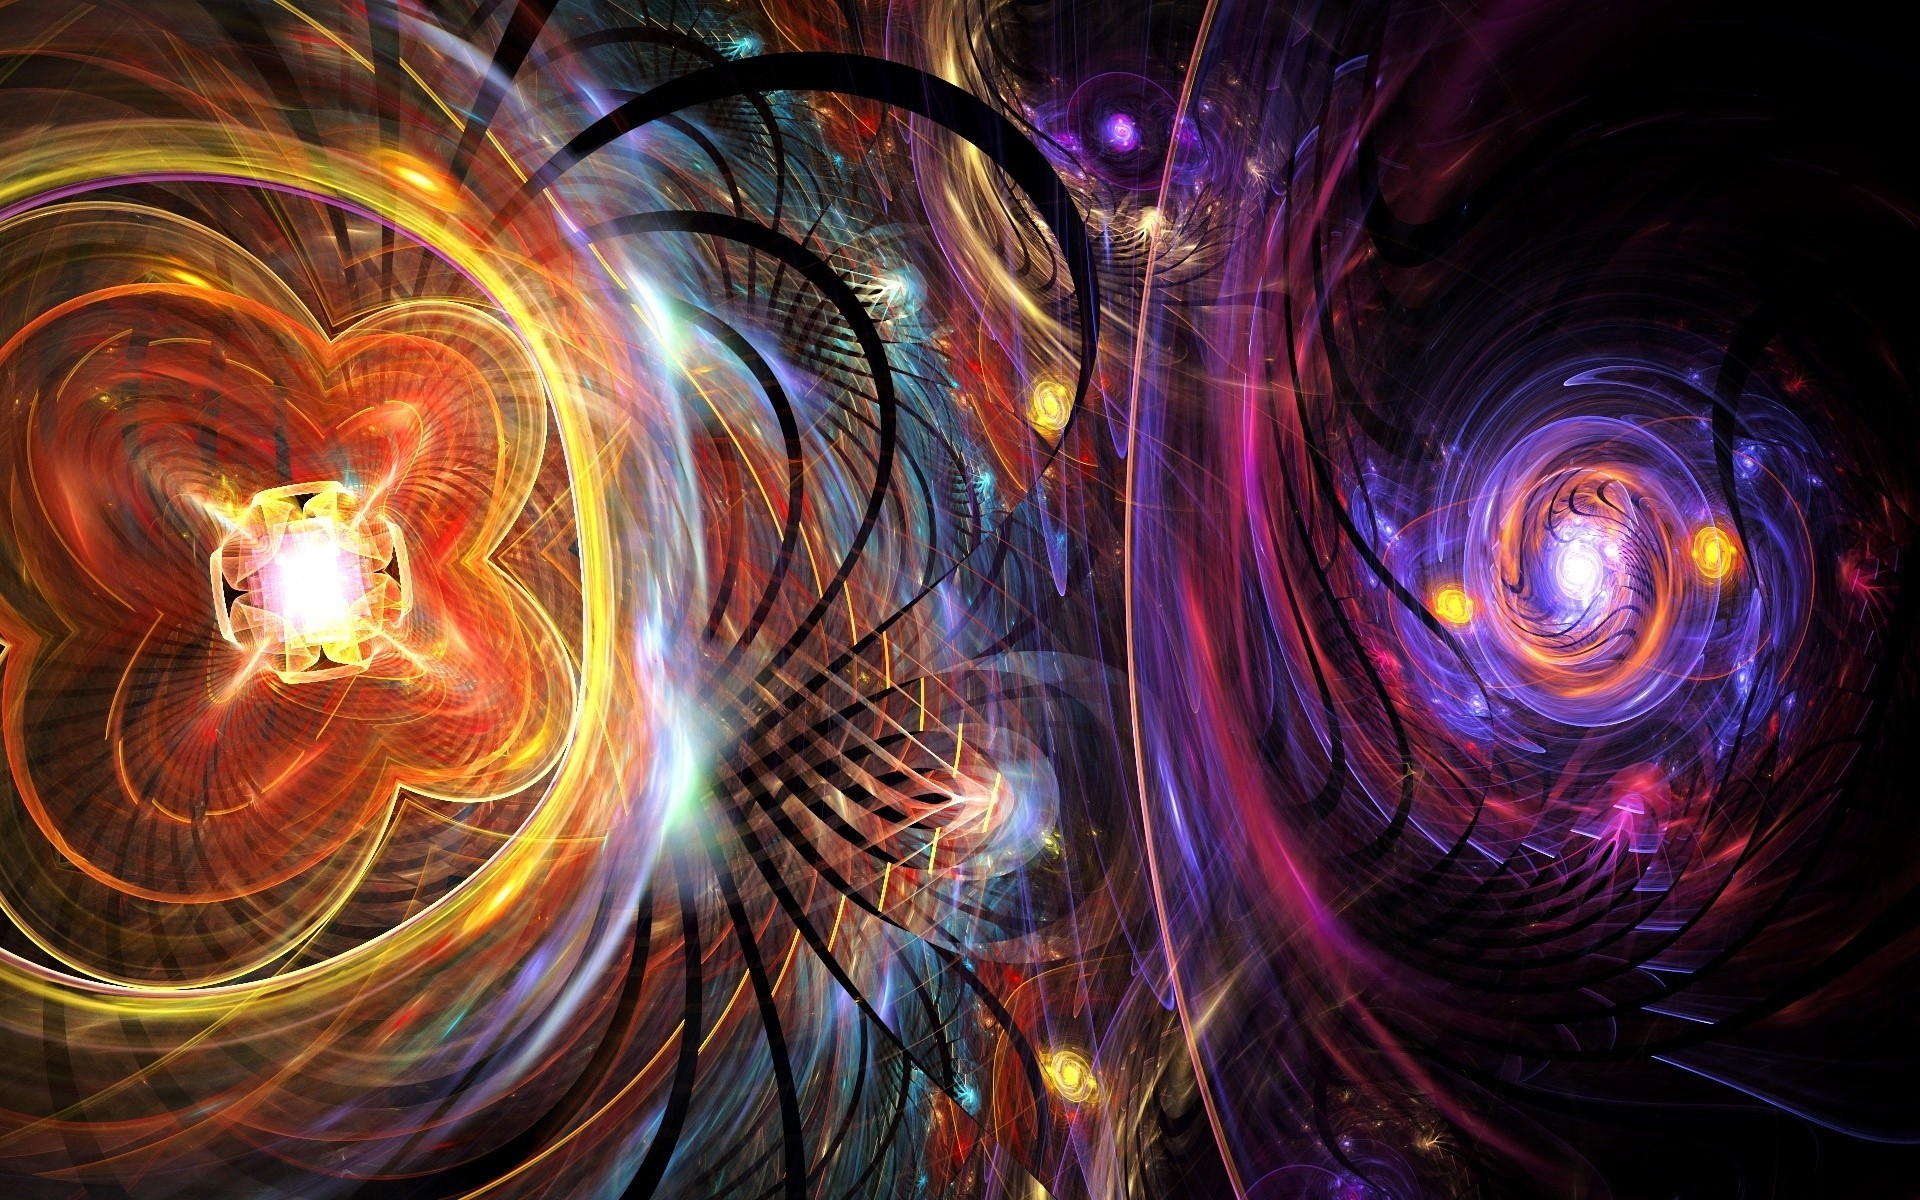 abstract light fractal design wallpaper background motion pattern fantasy energy texture vortex bright geometry desktop dynamic graphic line blur luminescence